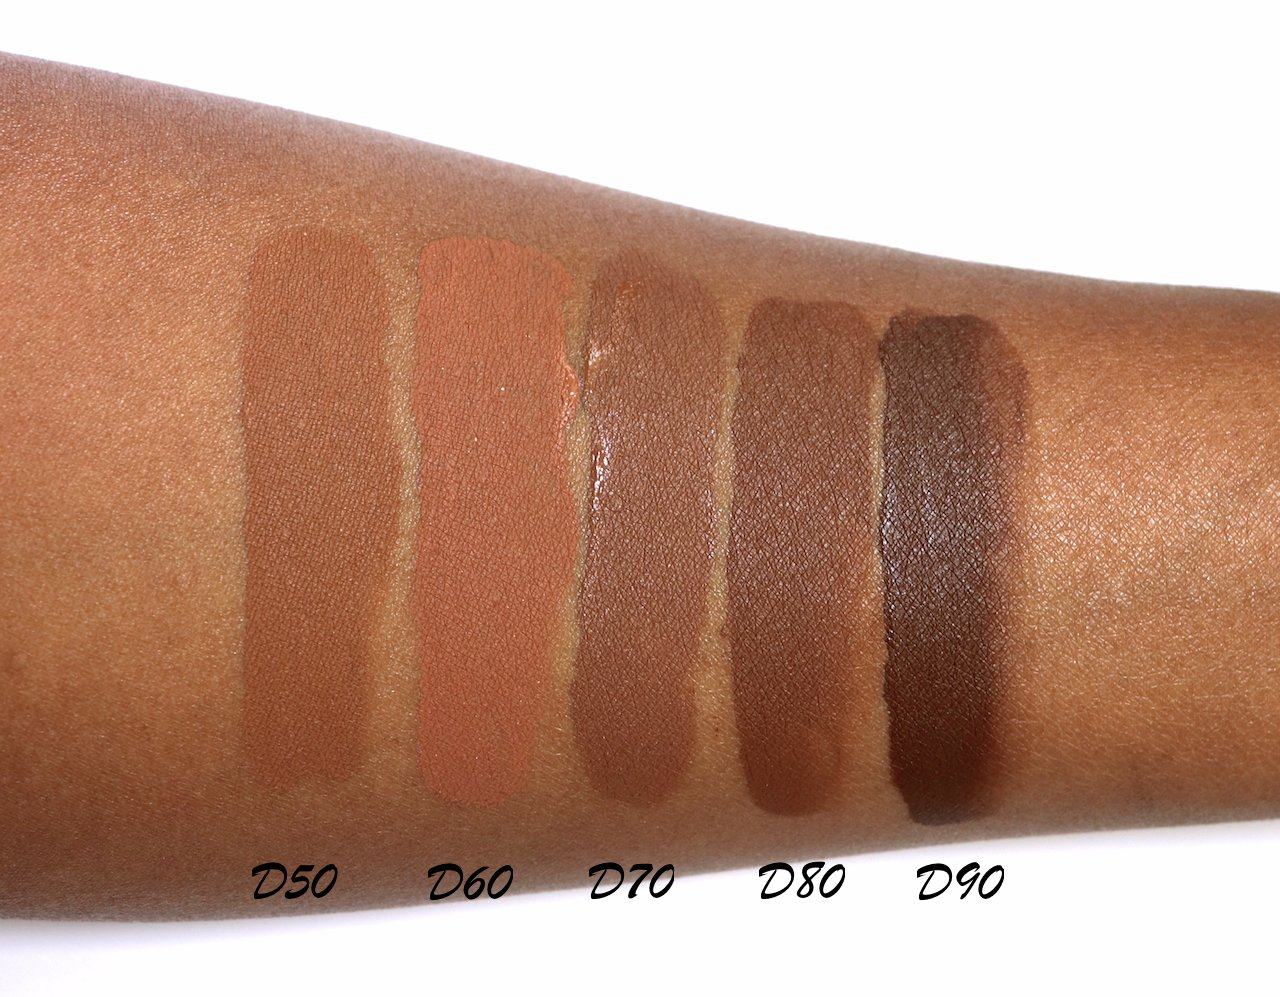 CoverGirl Trublend Matte Made foundation swatches D50-D90